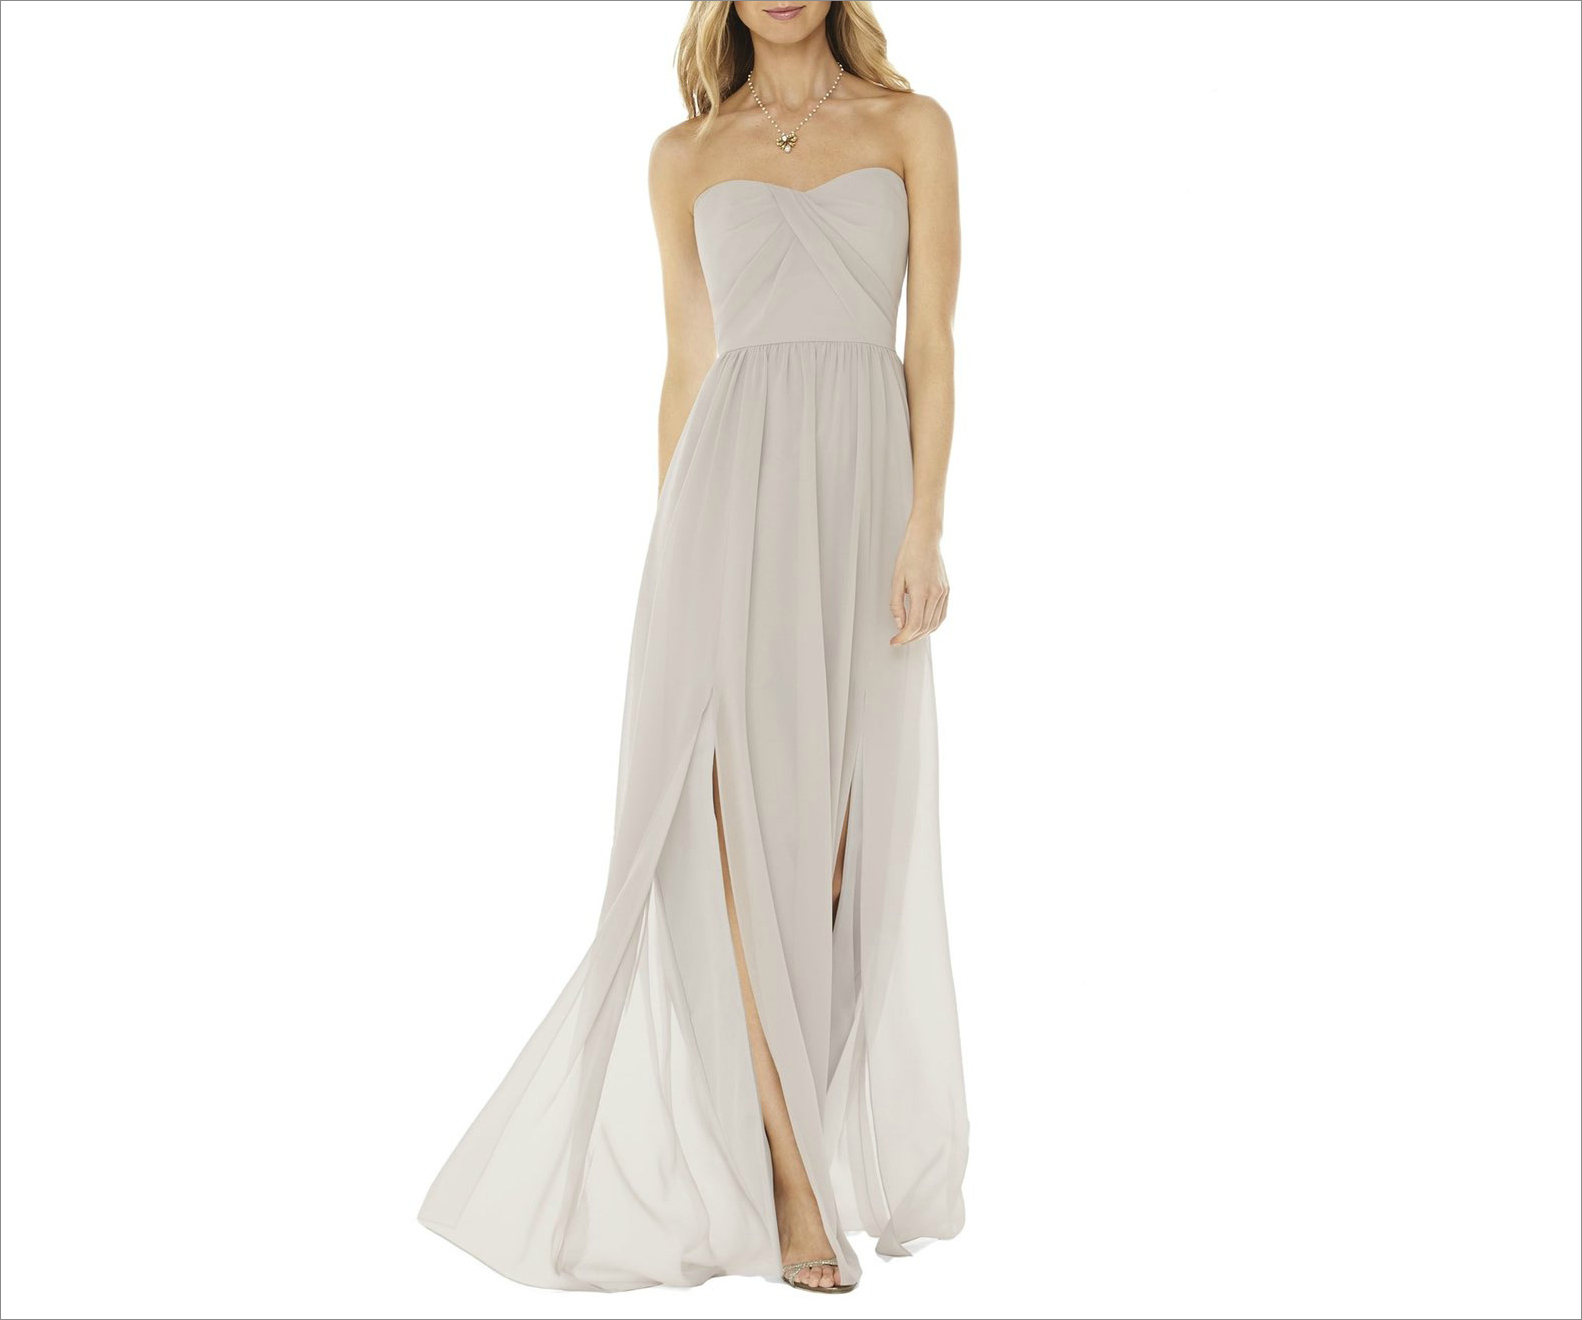 Strapless Georgette Gown bridesmaid dress in Oyster at Nordstrom